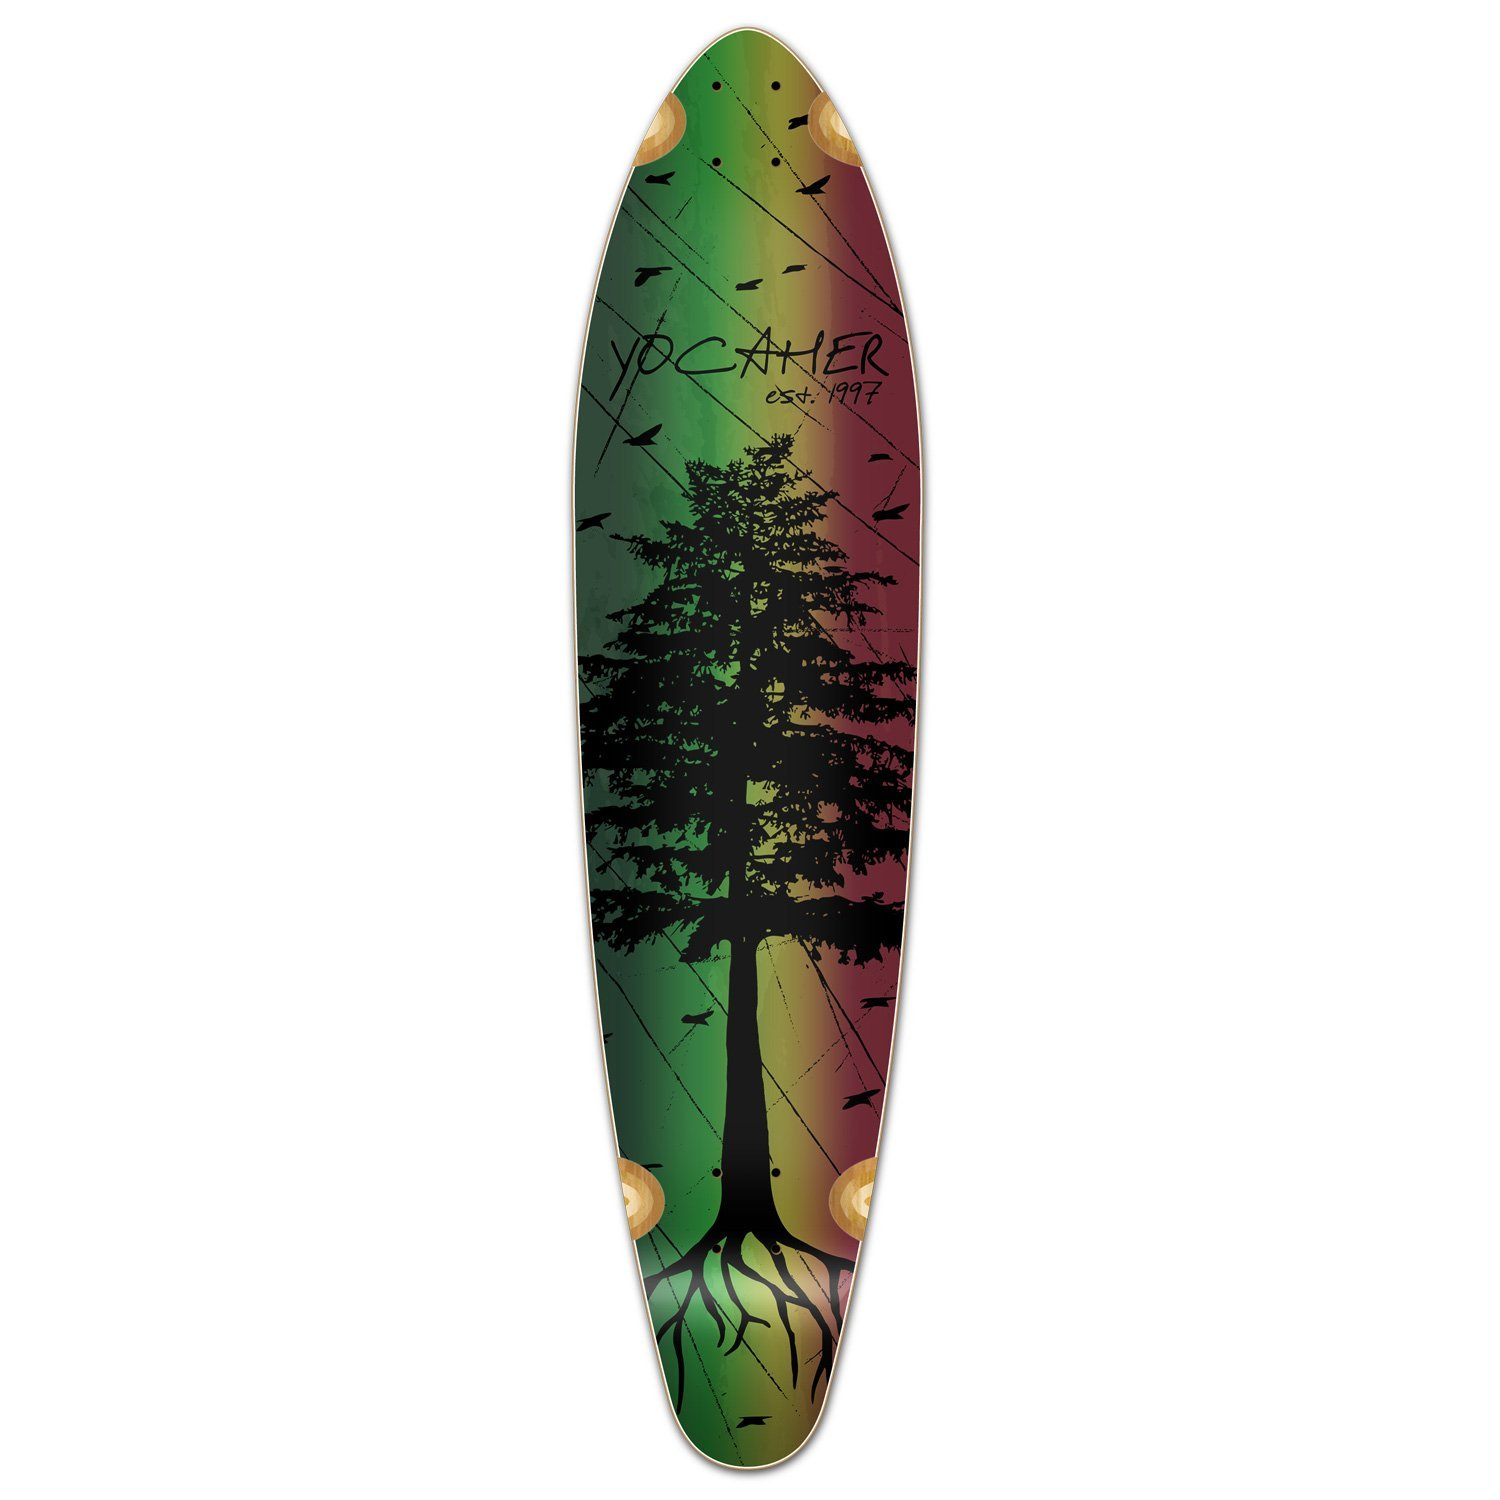 Yocaher in The Pines Rasta Longboard Complete Skateboard – Available in All Shapes